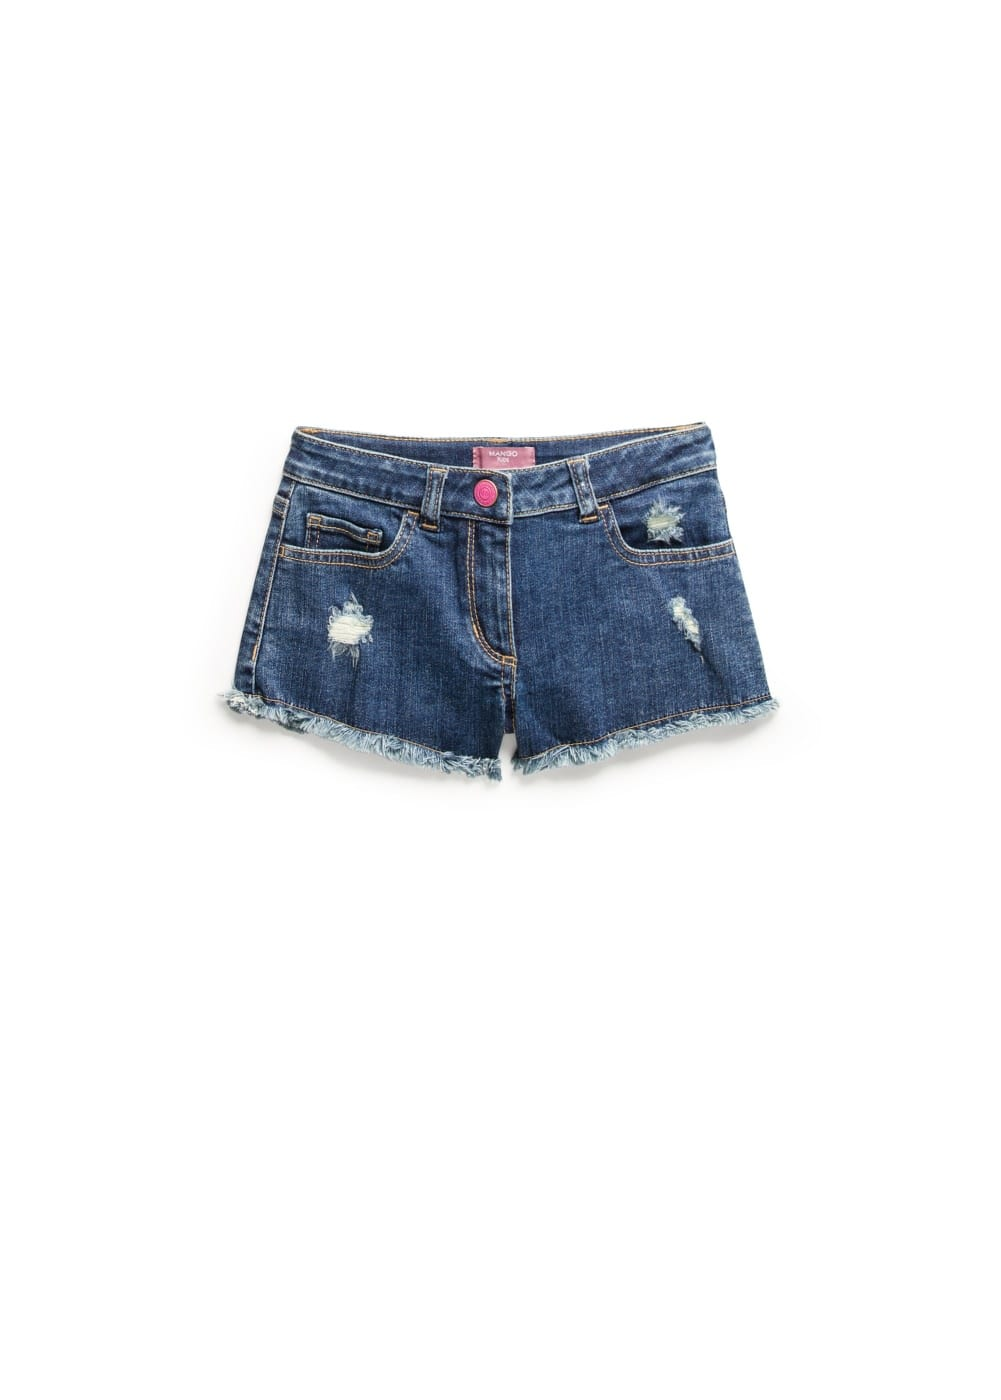 Frayed-edge denim shorts